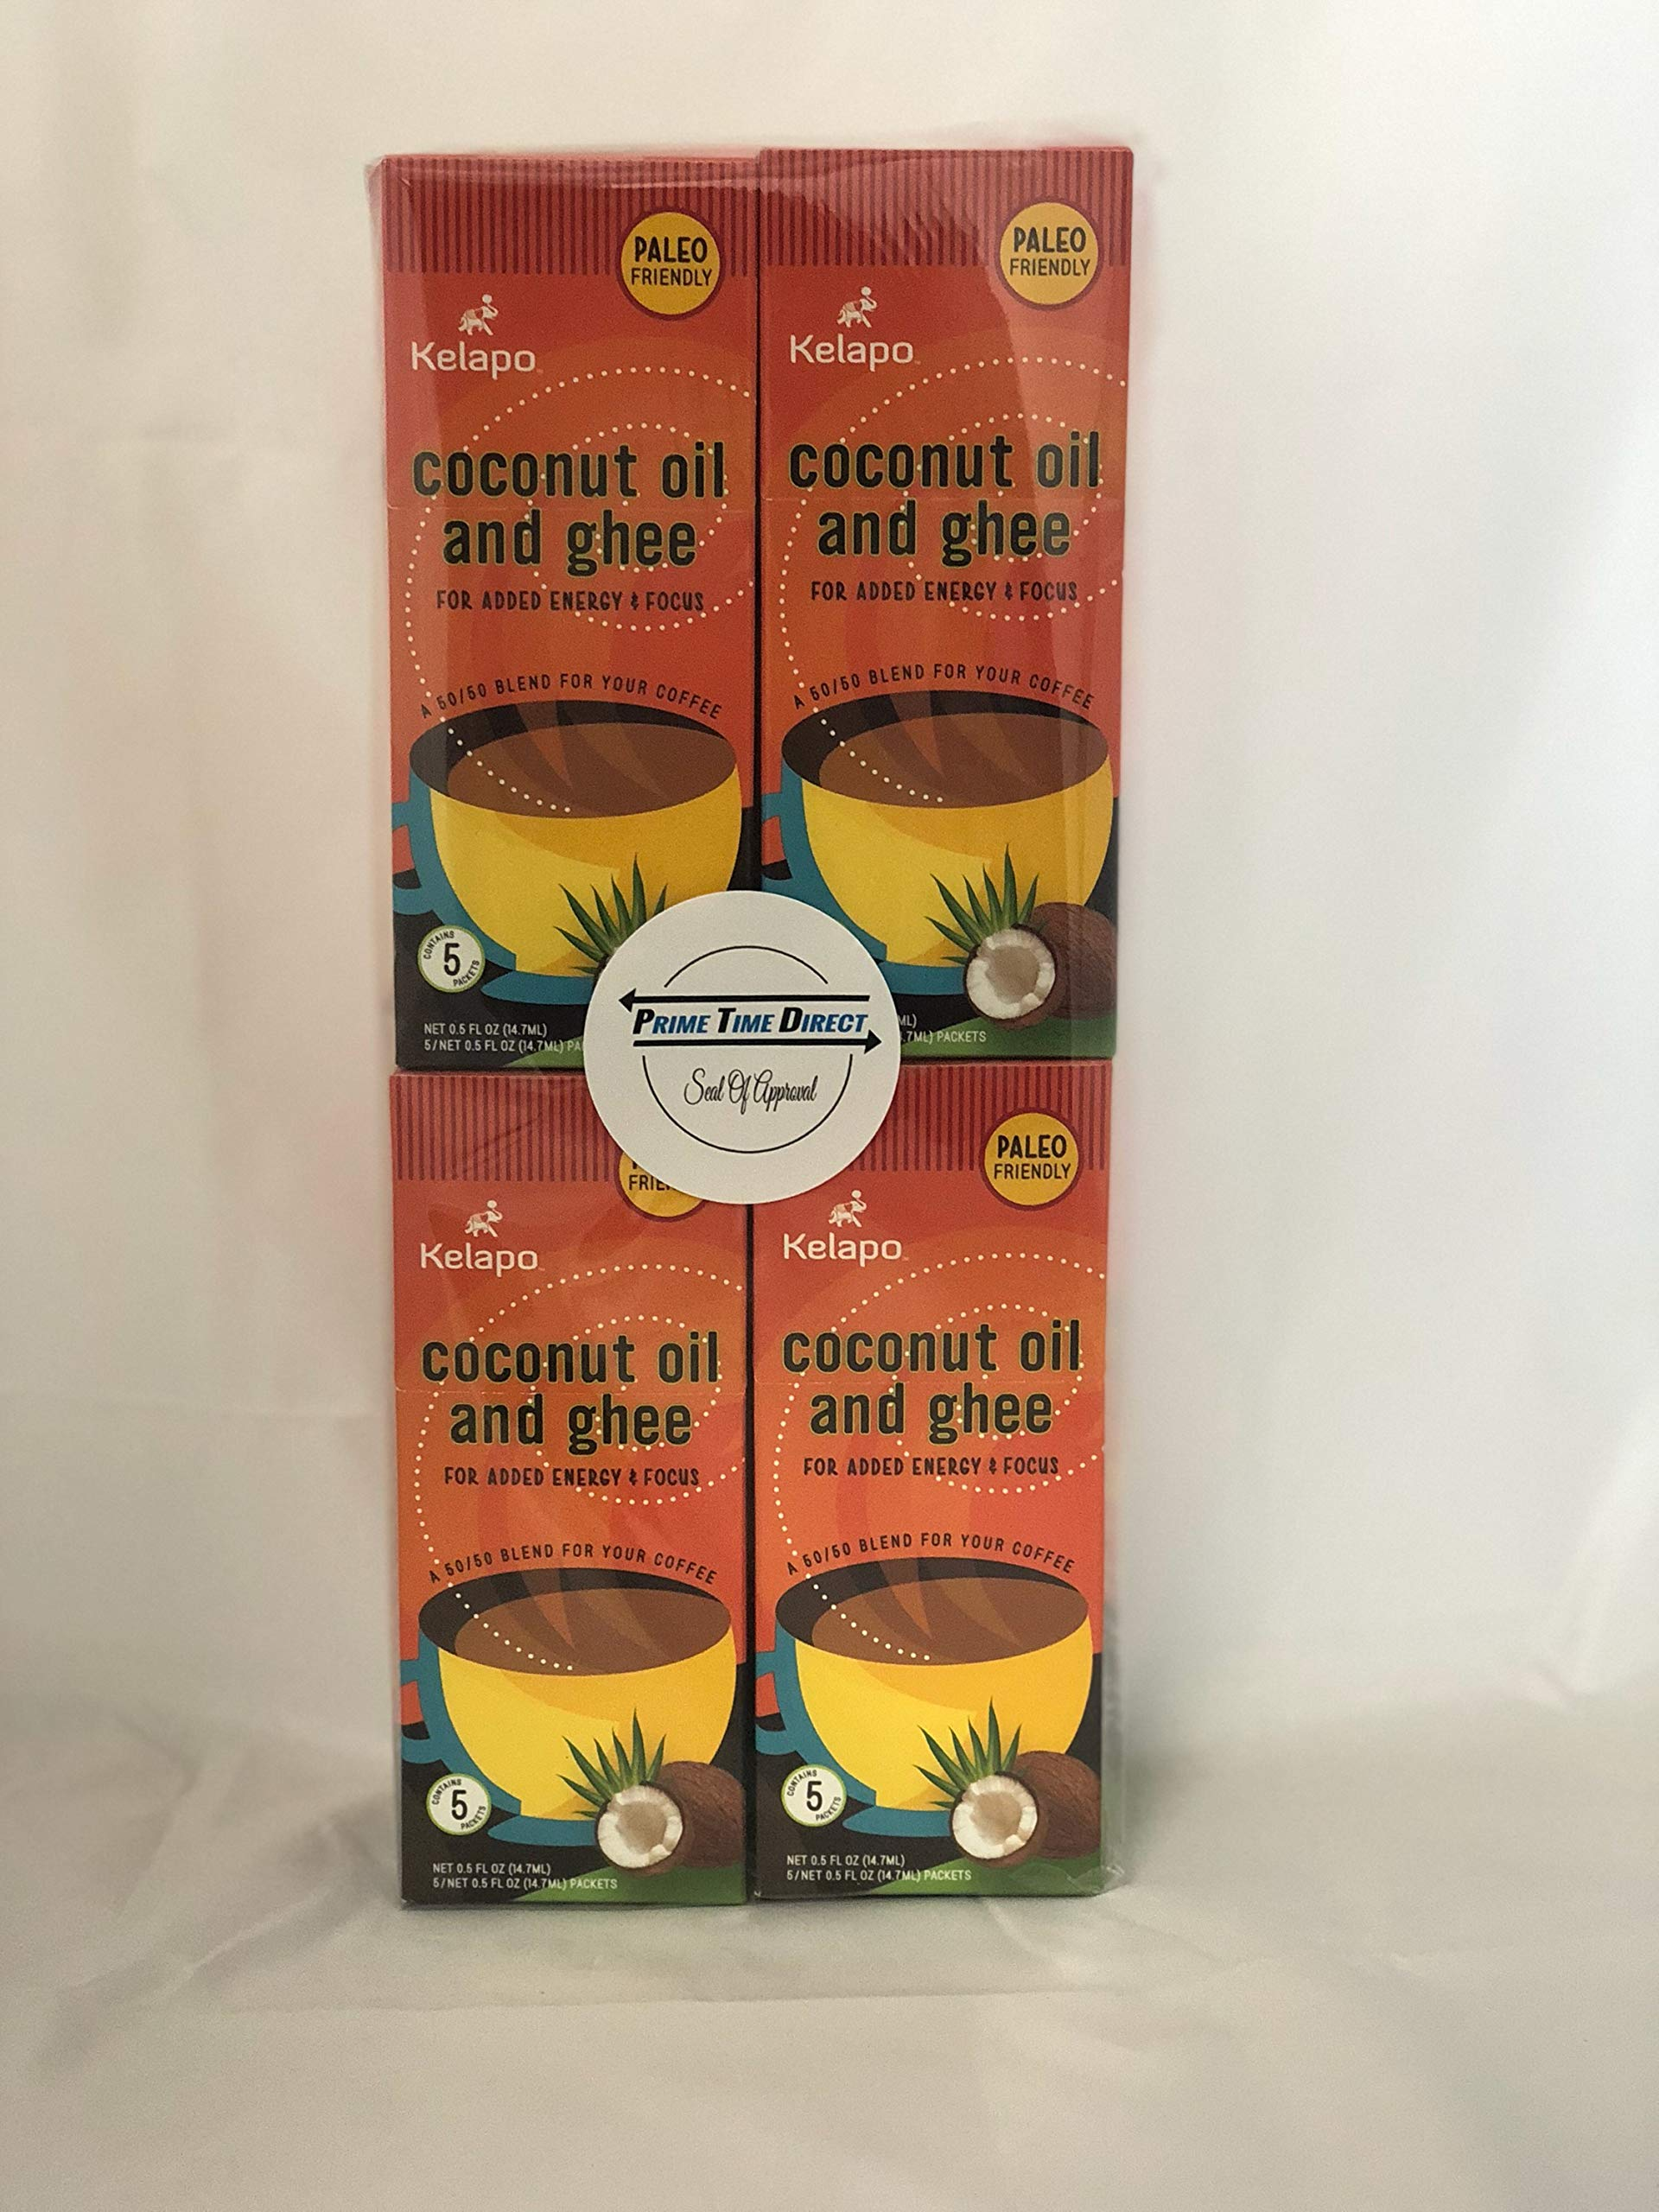 Kelapo Coconut Oil and Ghee 50/50 Blend Packets, 5 Packet Box (Pack of 4) in a Prime Time Direct Sealed Bag